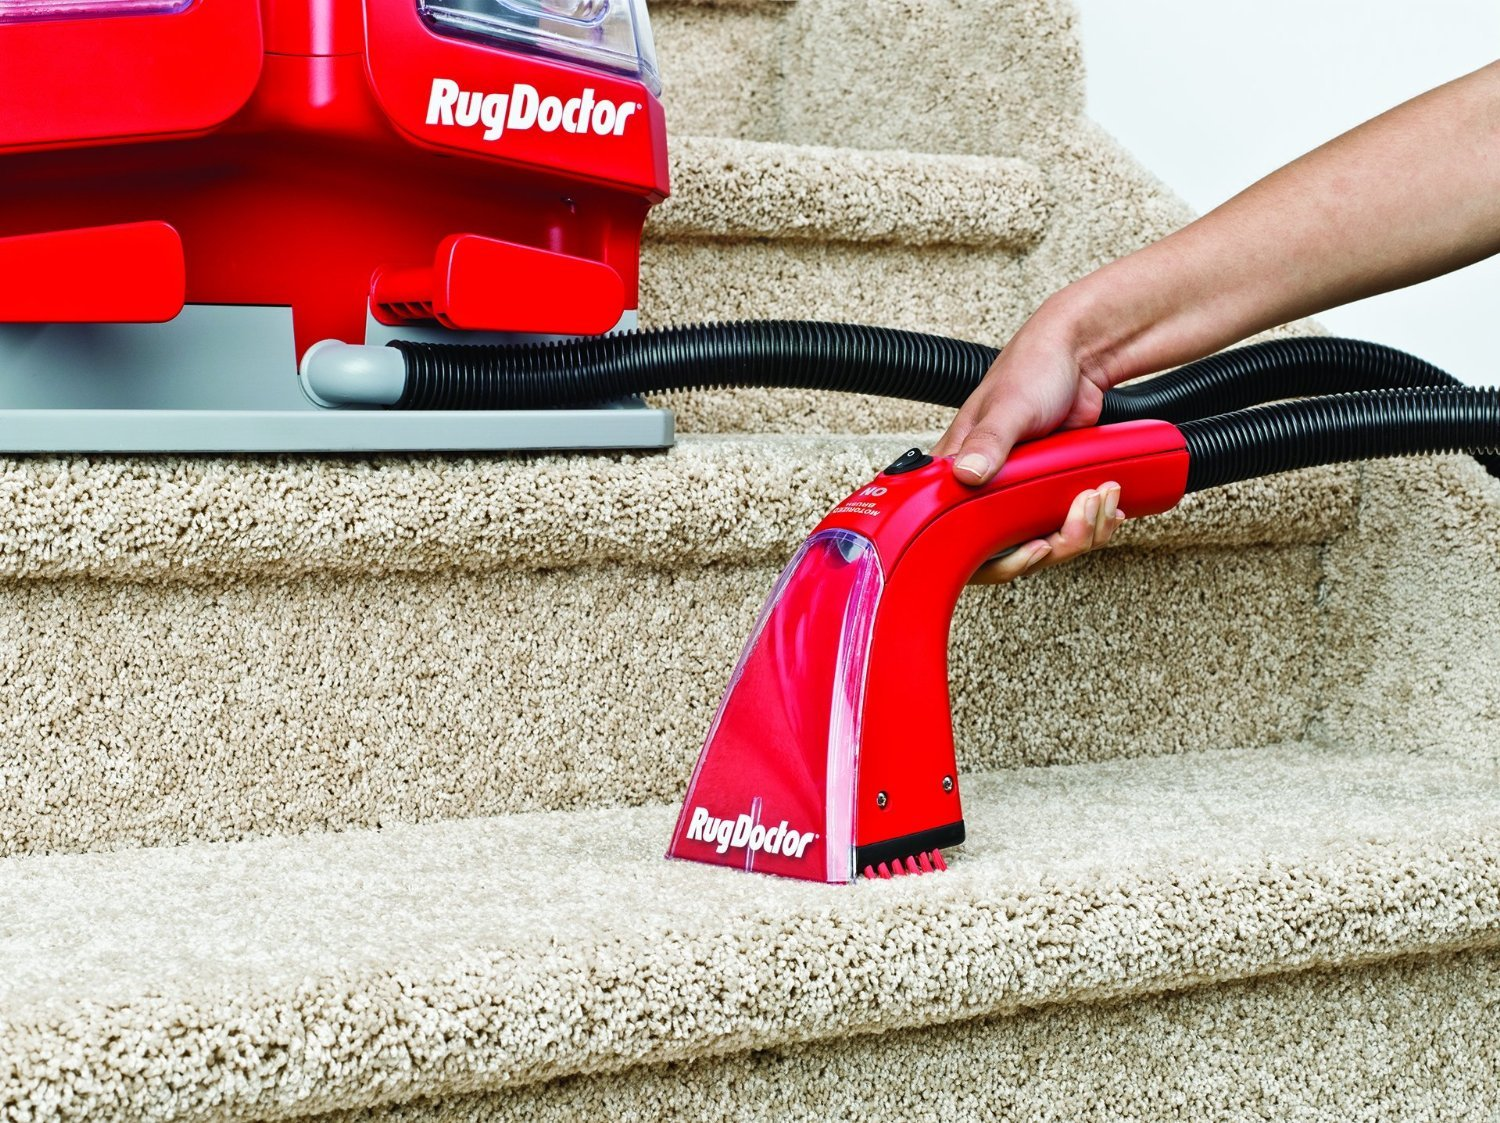 Buy a Rug Doctor Mighty Pro When you buy a Rug Doctor Mighty Pro carpet cleaning machine you will get free delivery, £50 worth of Rug Doctor chemicals and an upholstery kit.